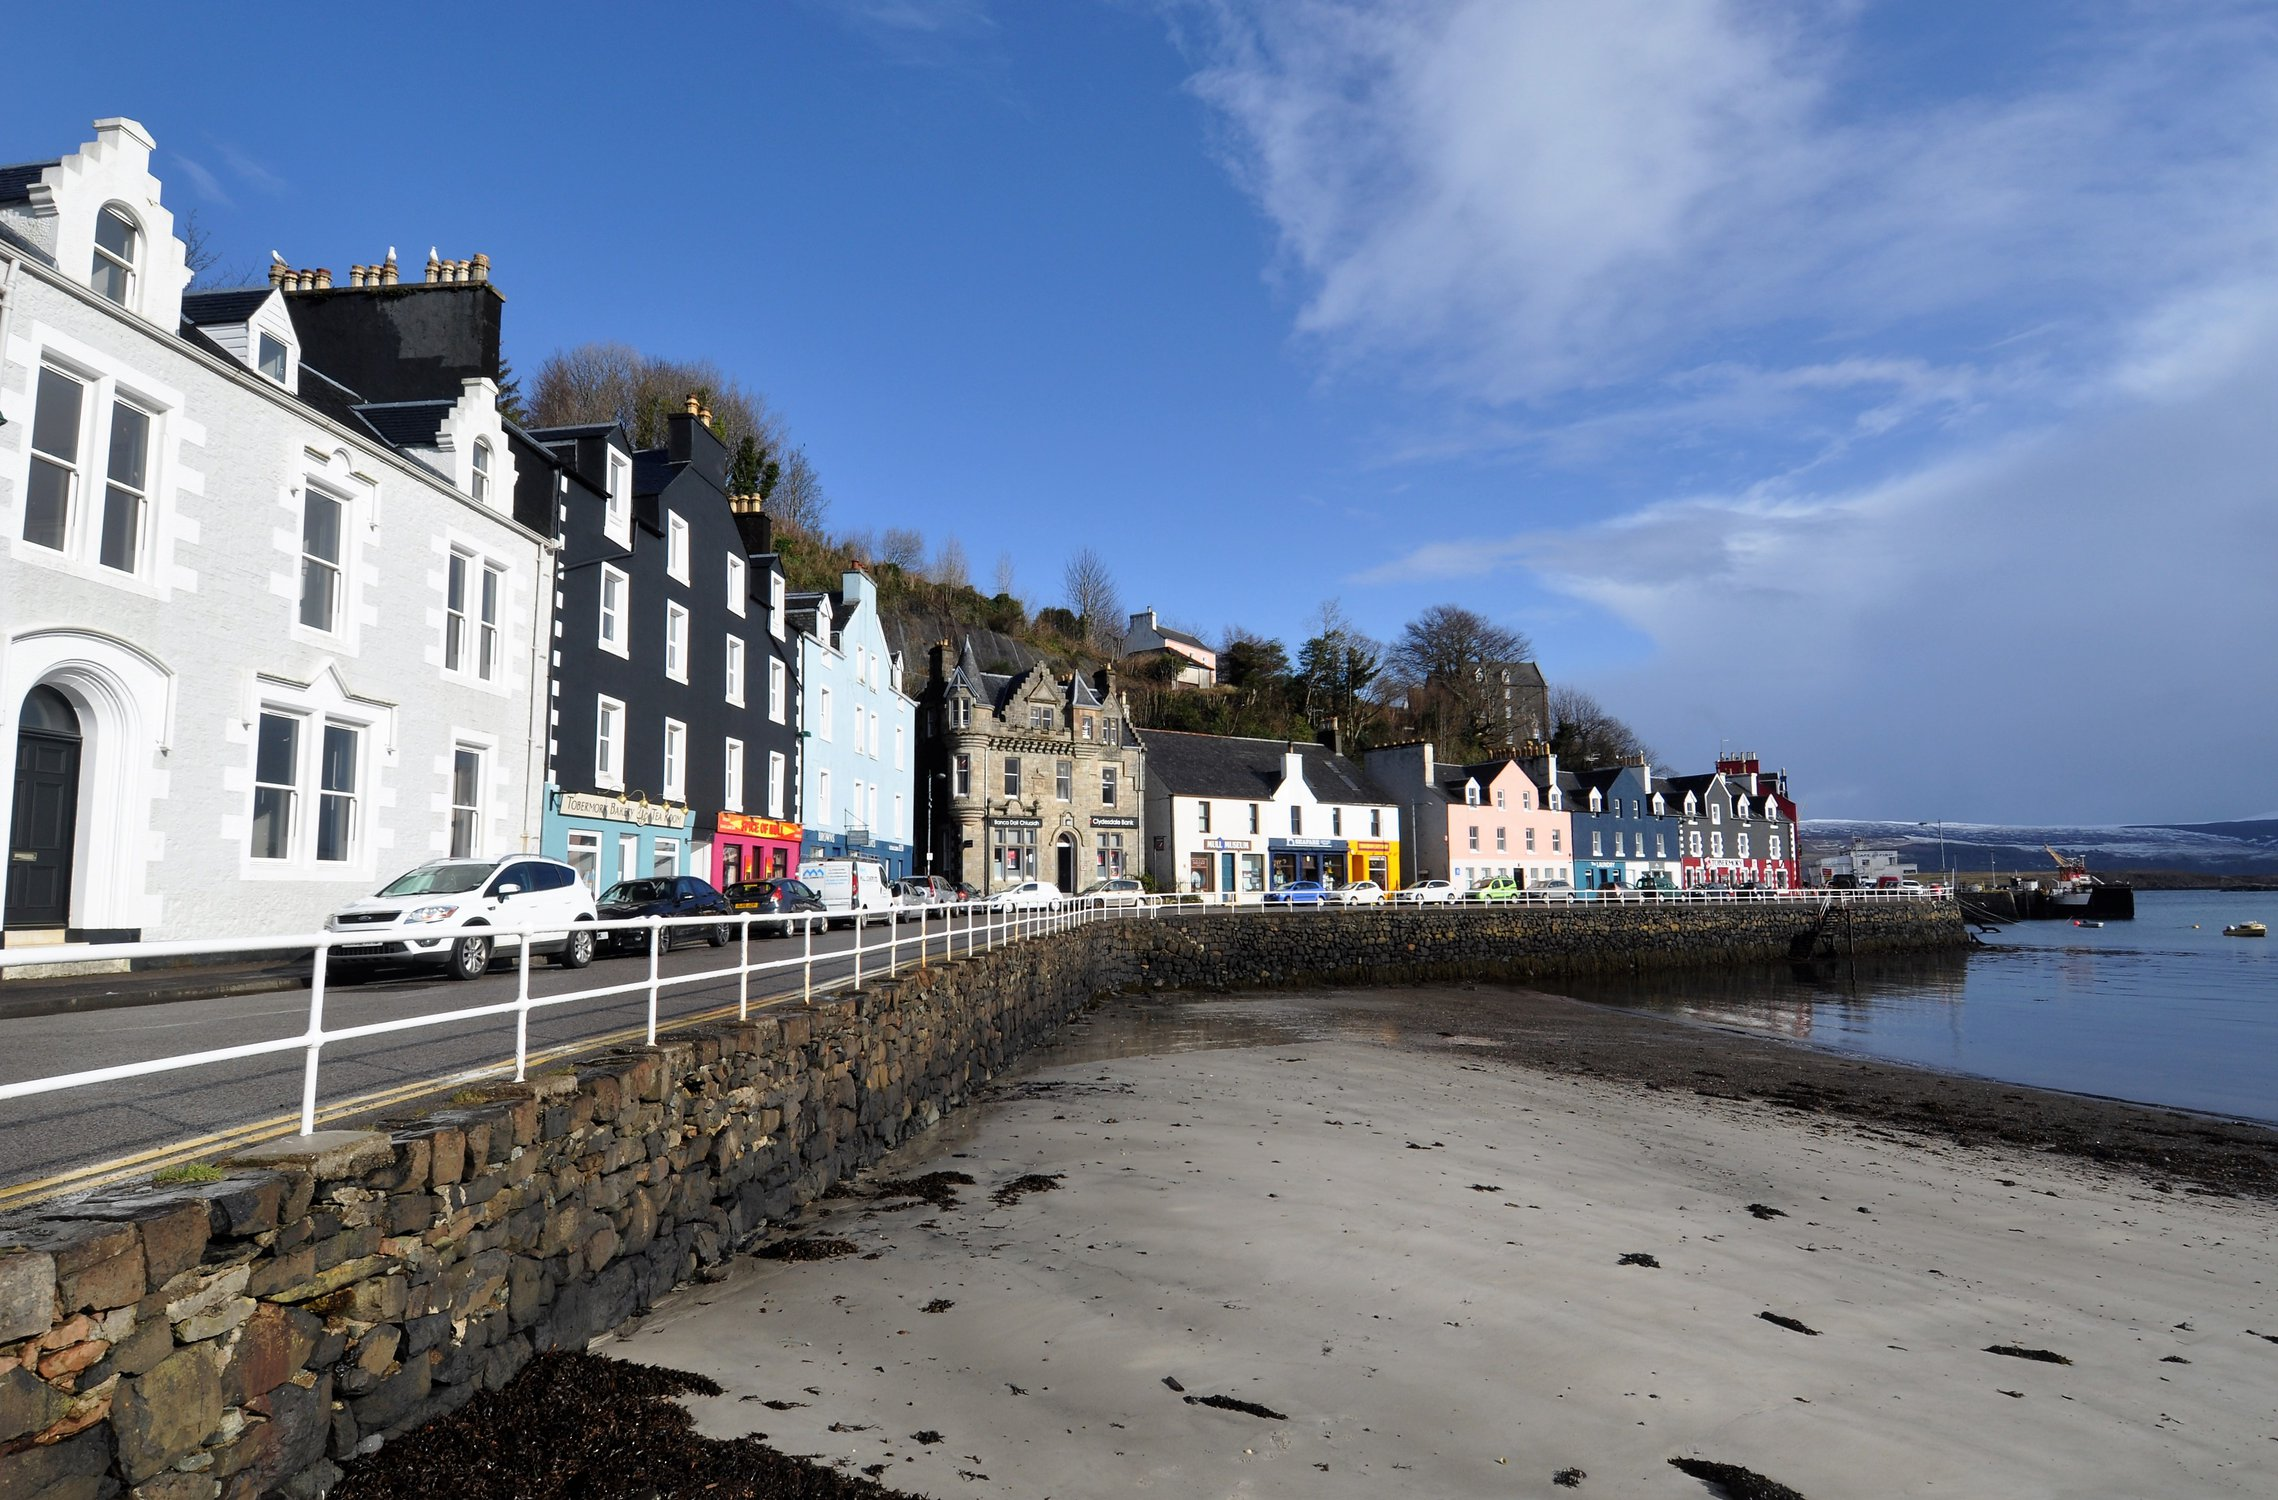 Picturesque town of Tobermory